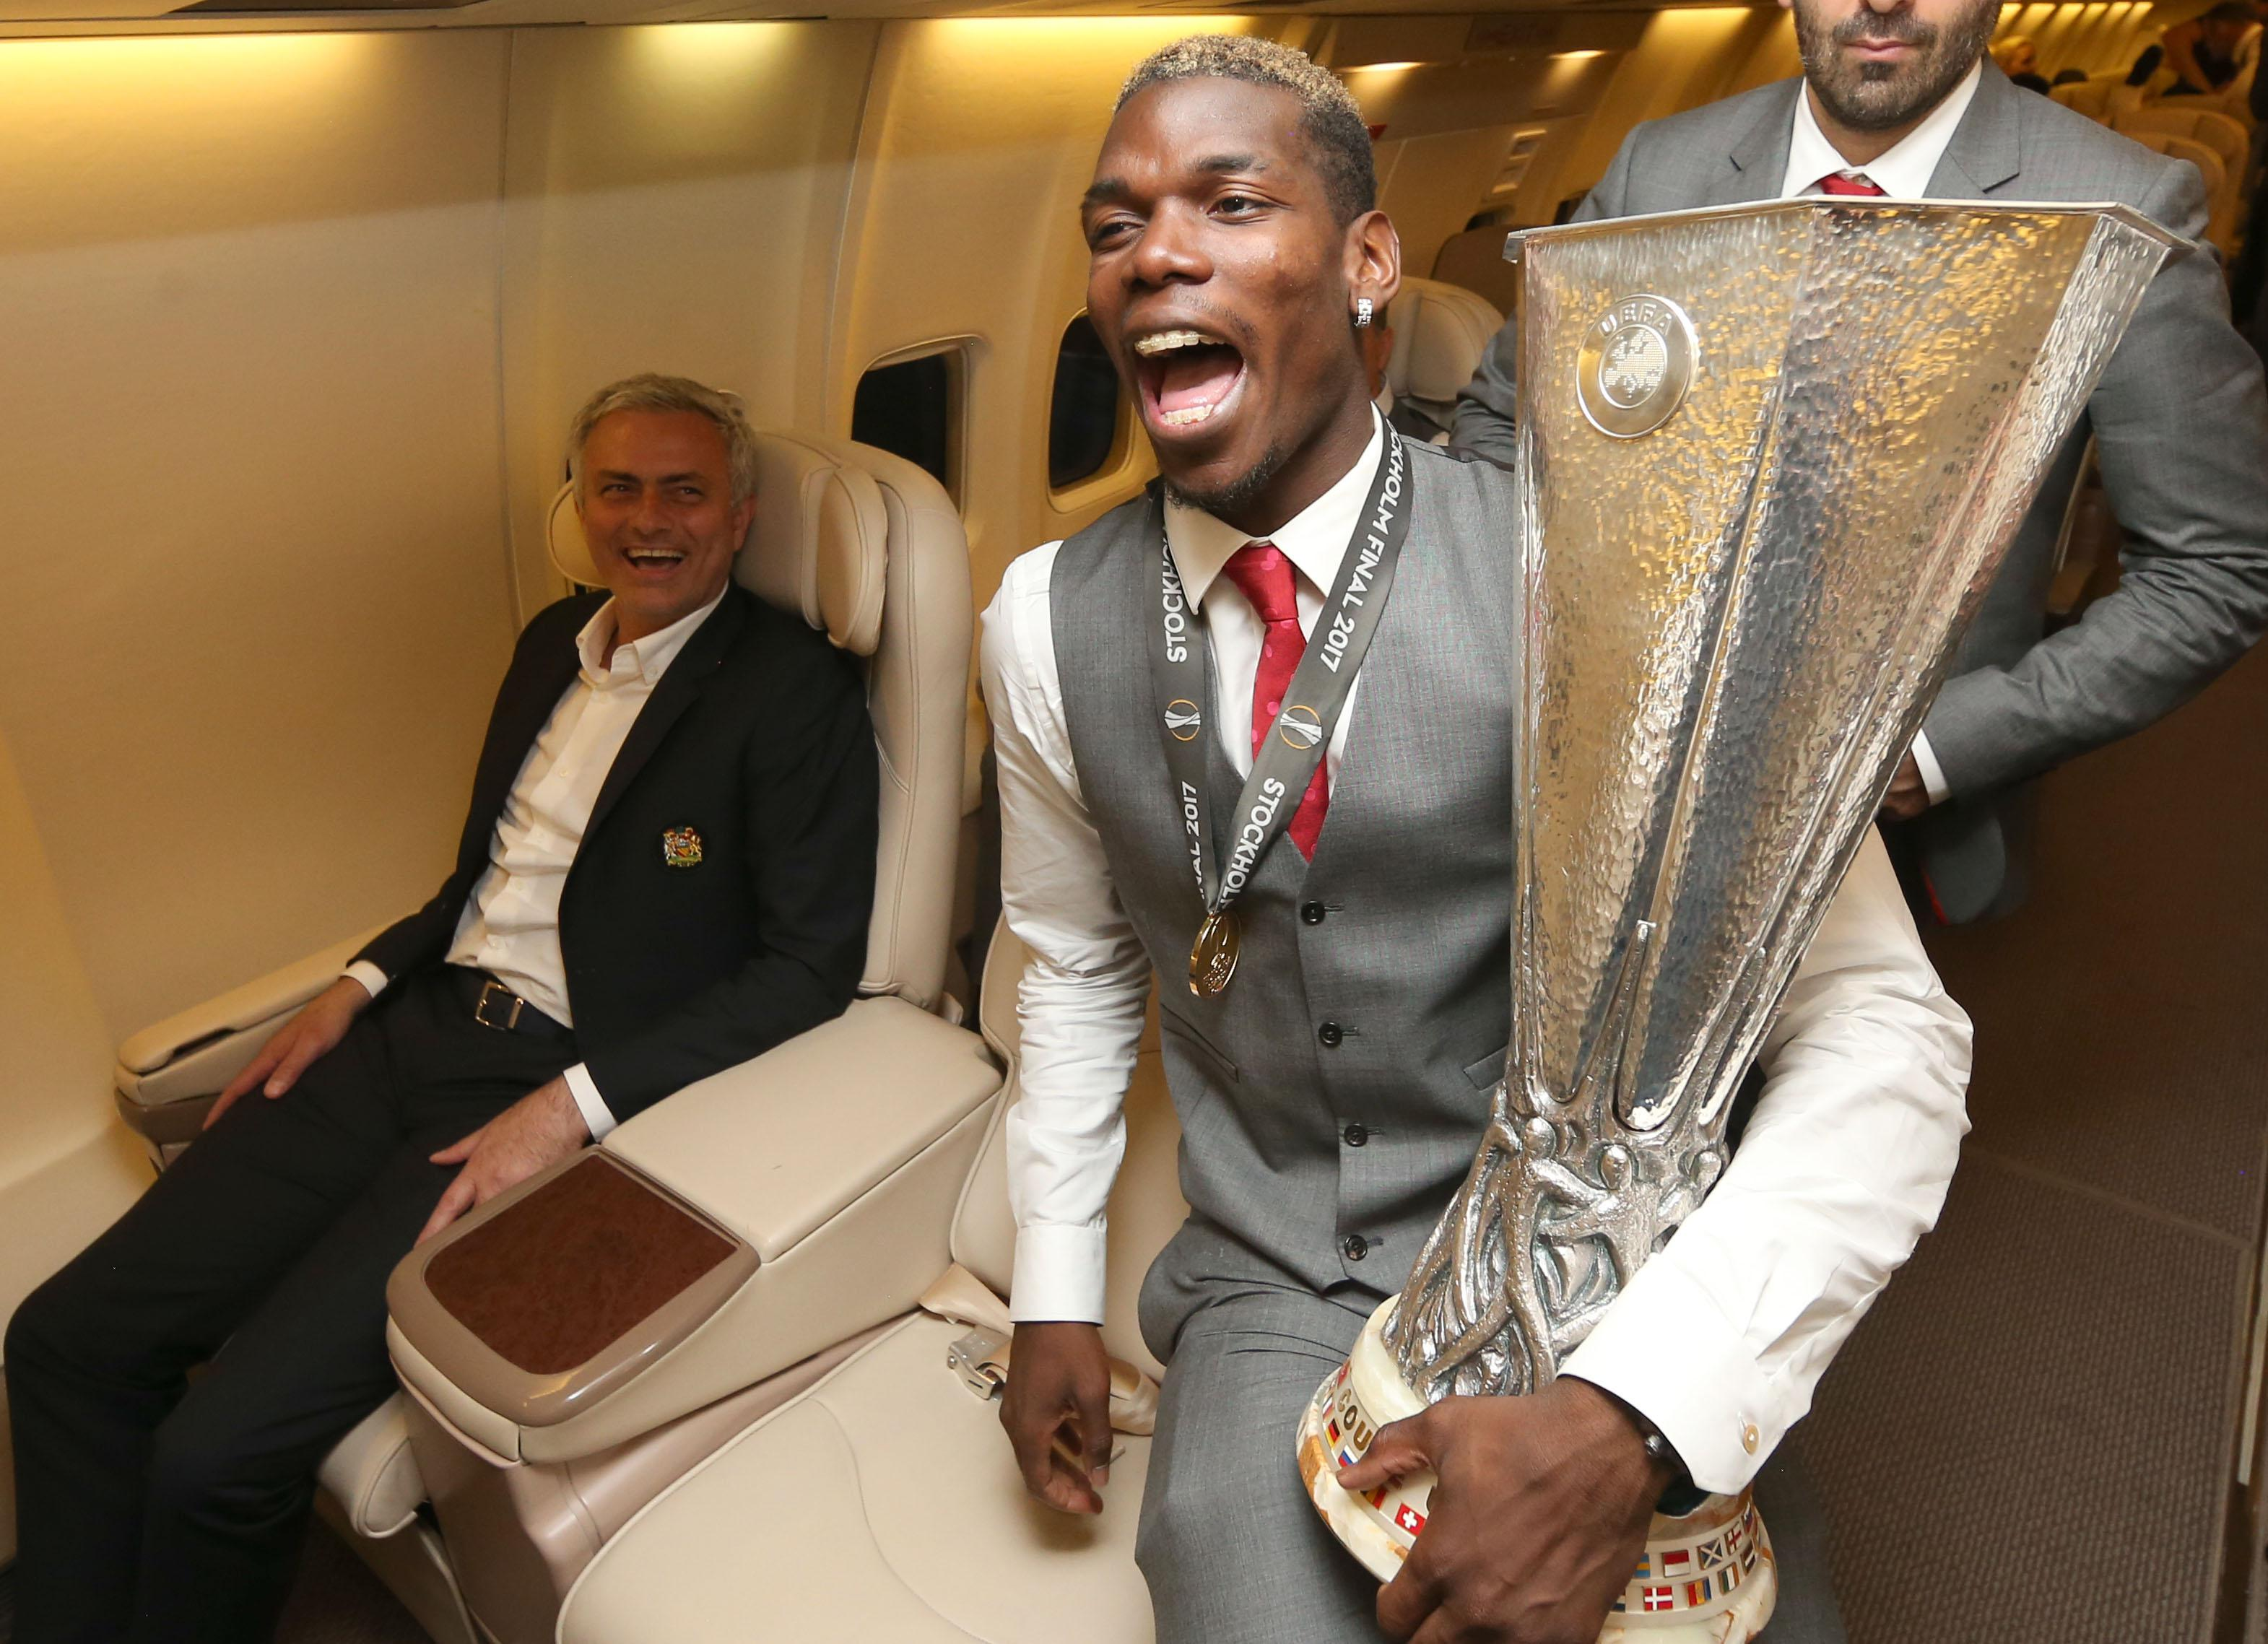 Most fans would have been happy with United's trophy haul last season